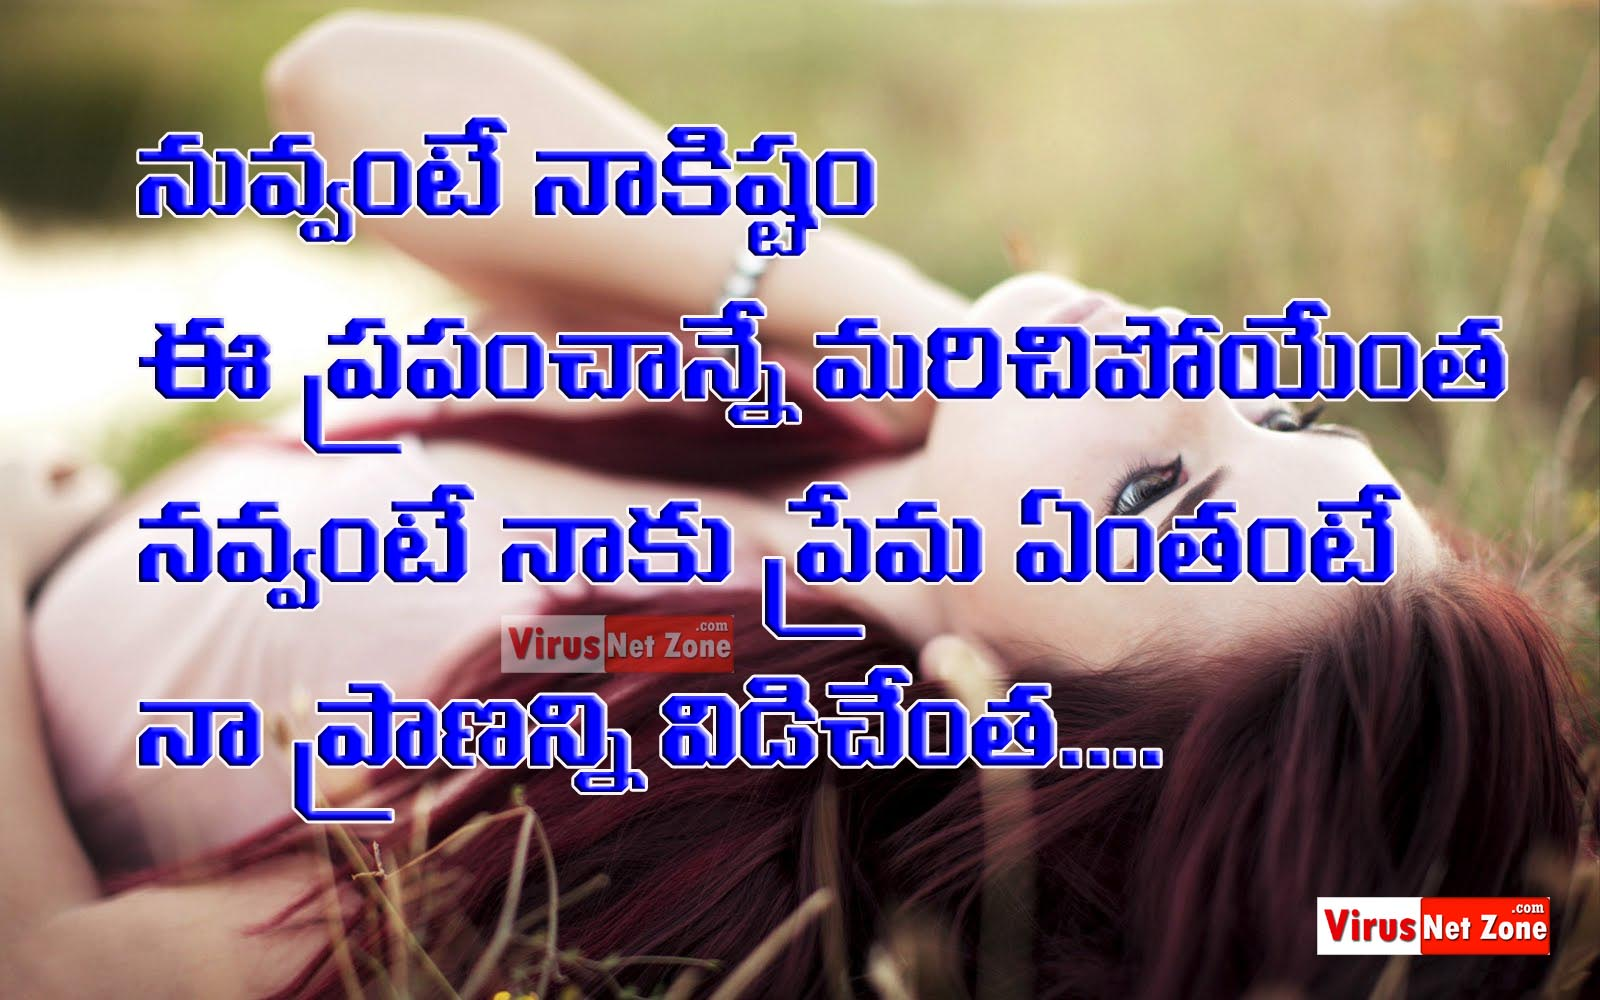 Telugu Love Quotes Impressive Real Heart Touching Love Quotes Images In Telugu  Virus Net Zone